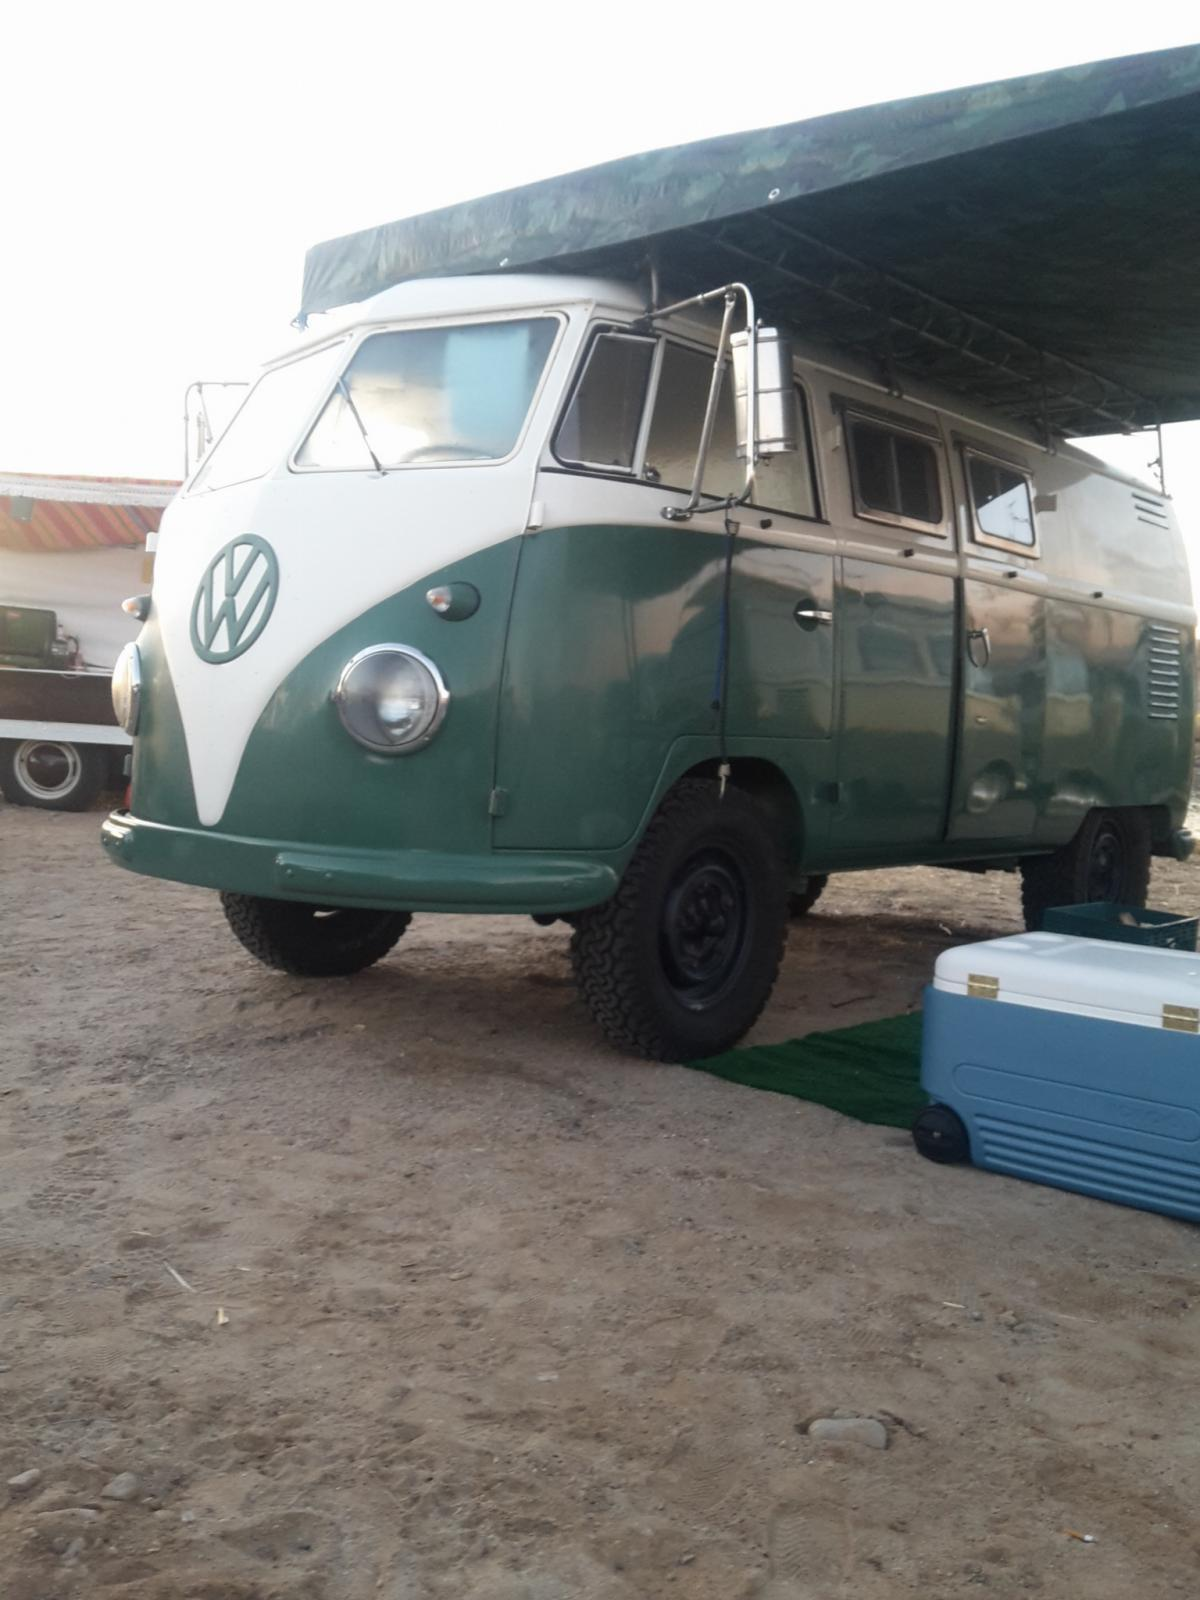 ben's dd lifted camper